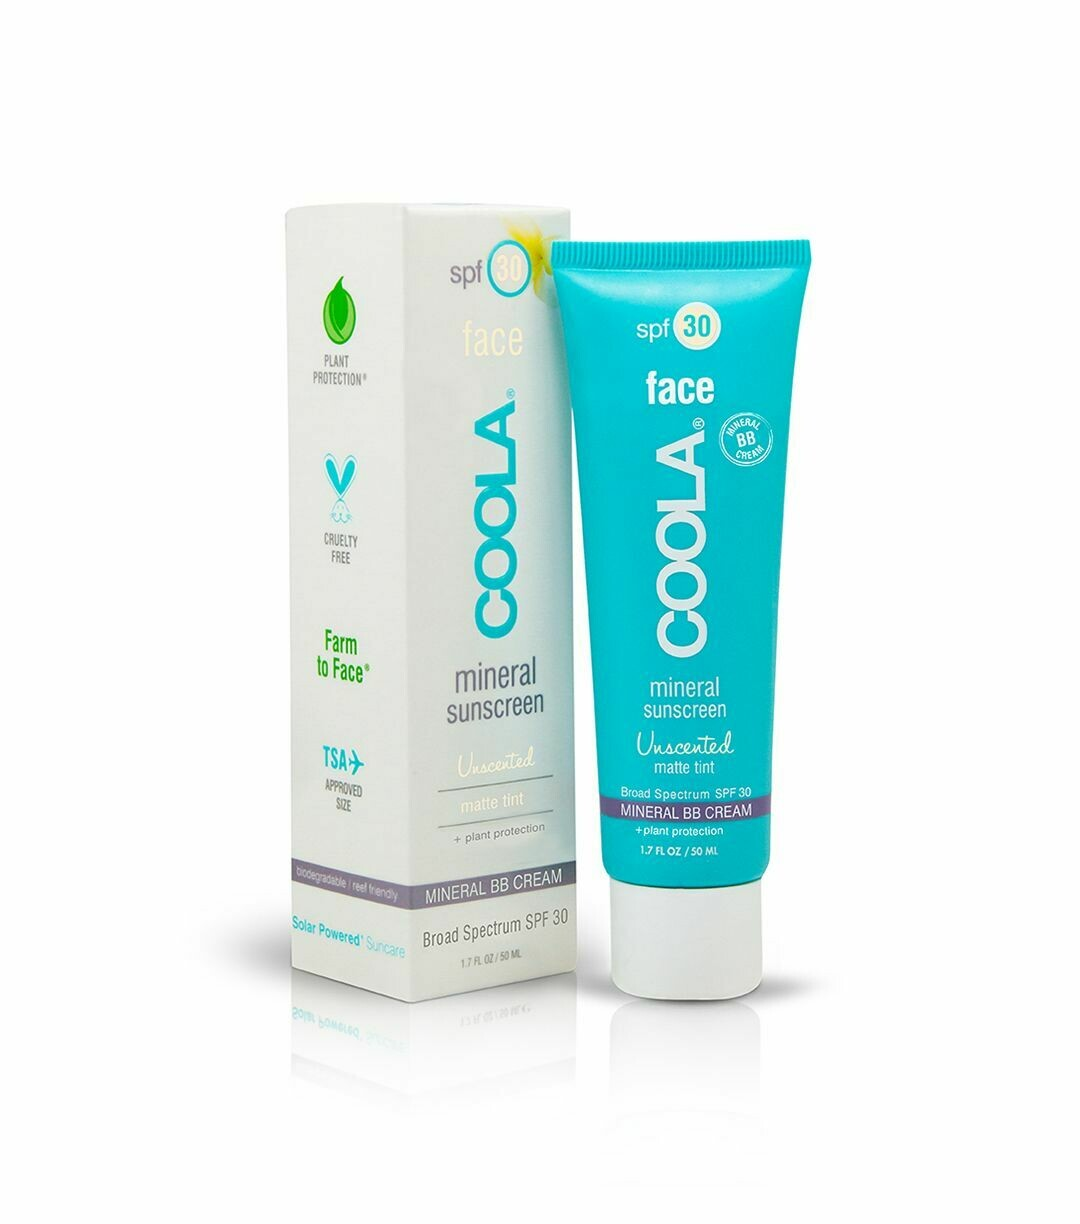 COOLA CLASSIC FACE SPF30 UNSCENTED, 50ml